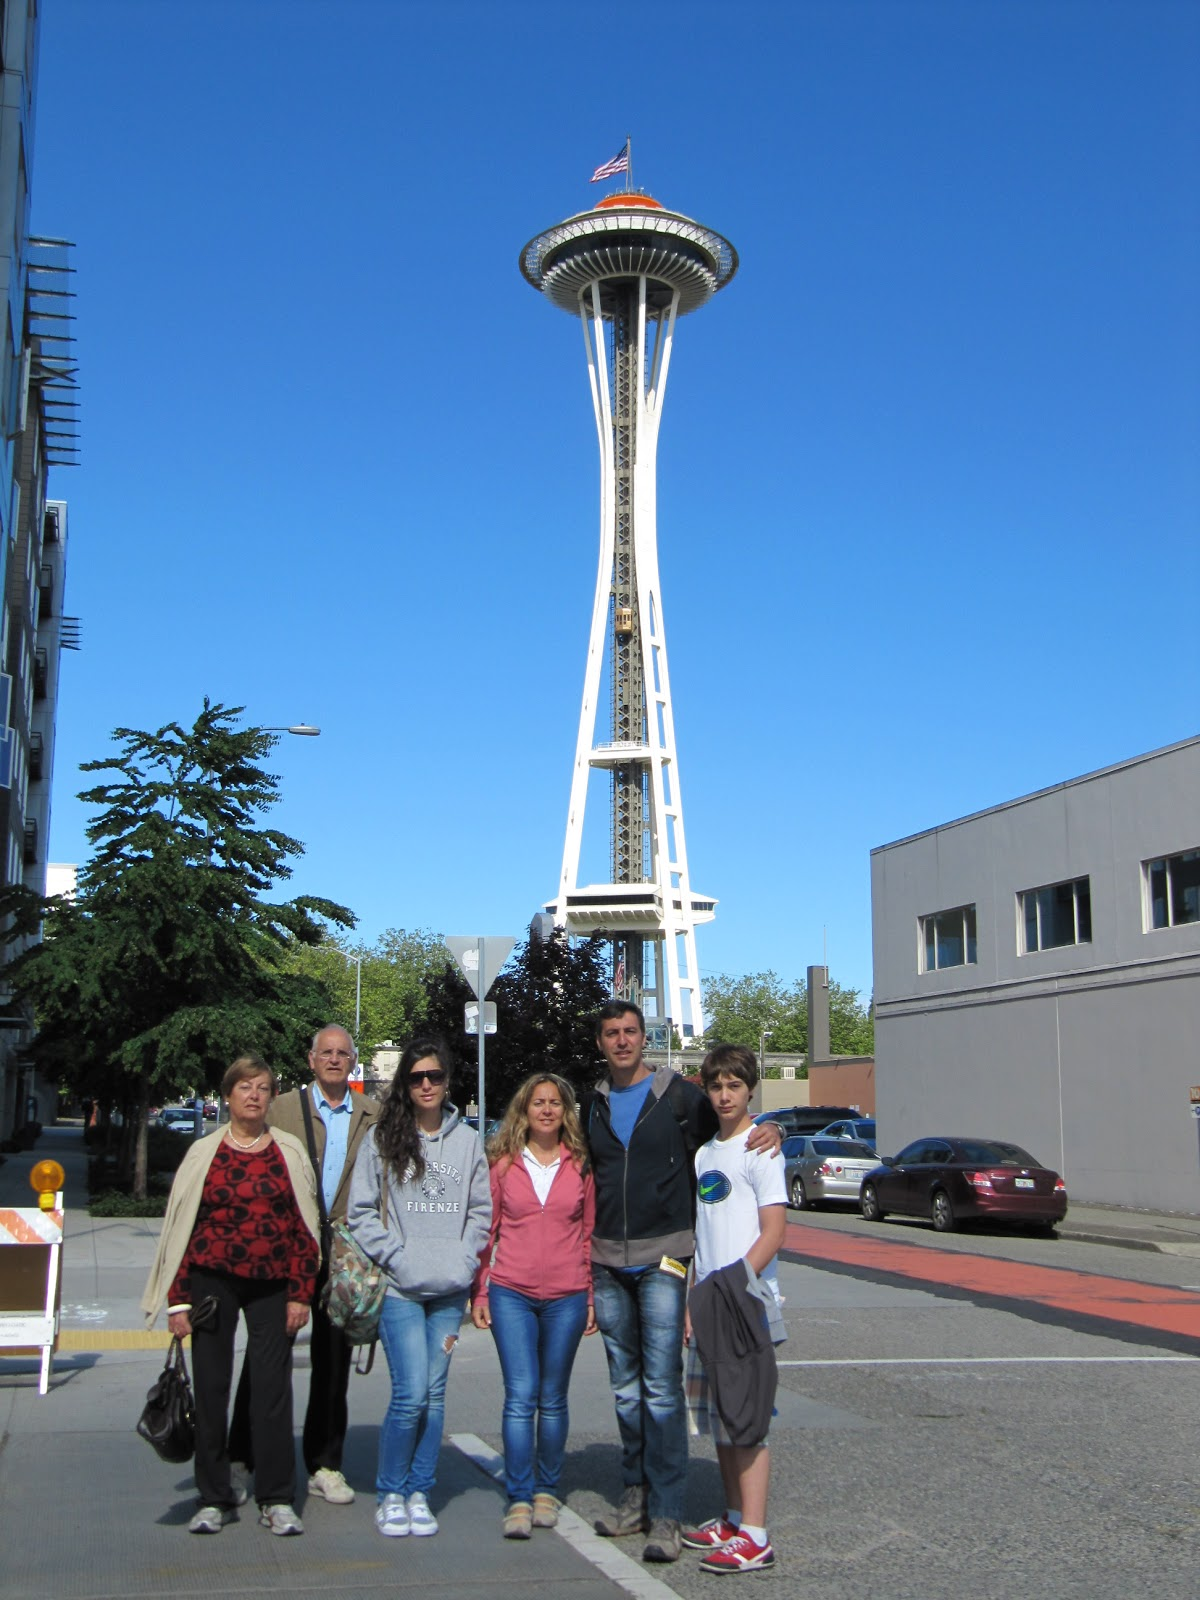 fotos con la space needle